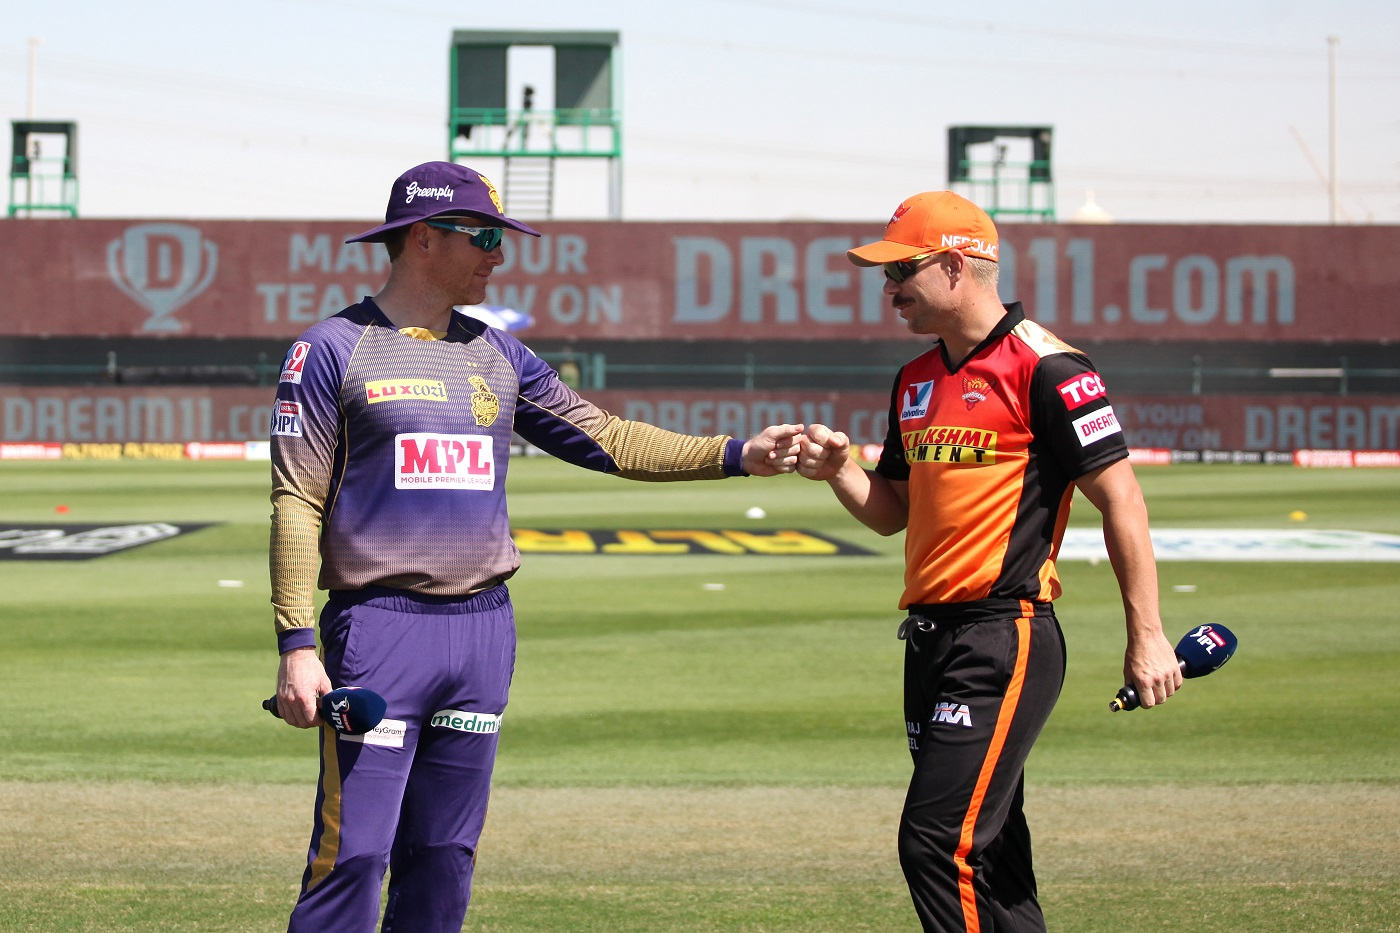 Eoin Morgan and David Warner during the toss in IPL 2020